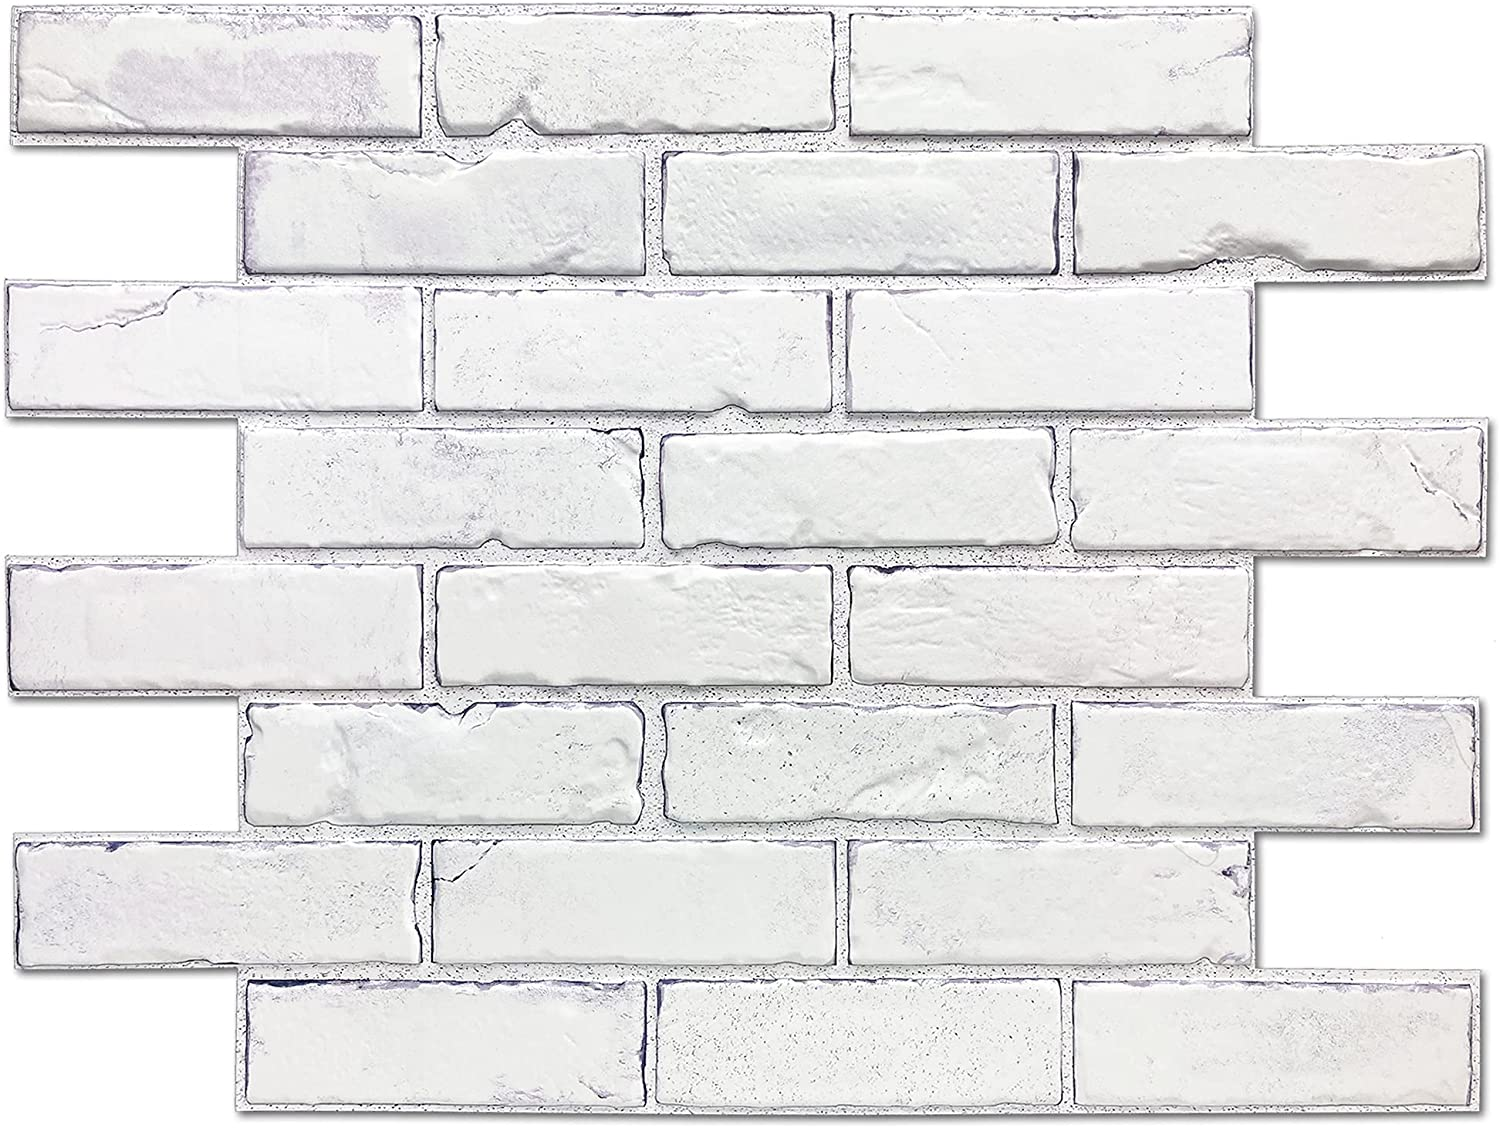 Retro-Art 3D Wall Panels Beauty products Pack of Industry No. 1 Vintage Brick PVC 10 White